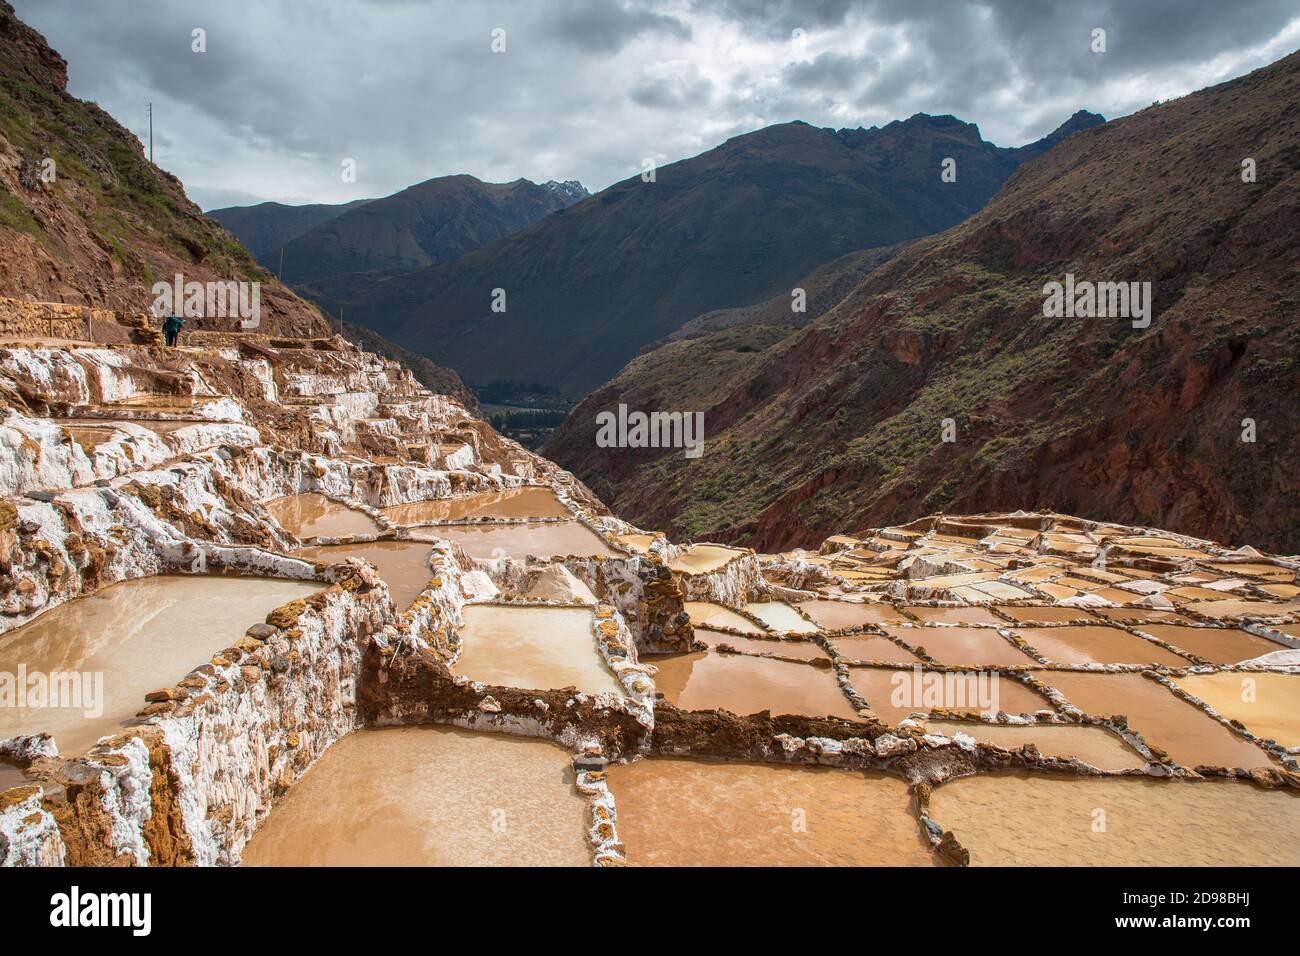 Salinas de Maras au Pérou. Stock Photo